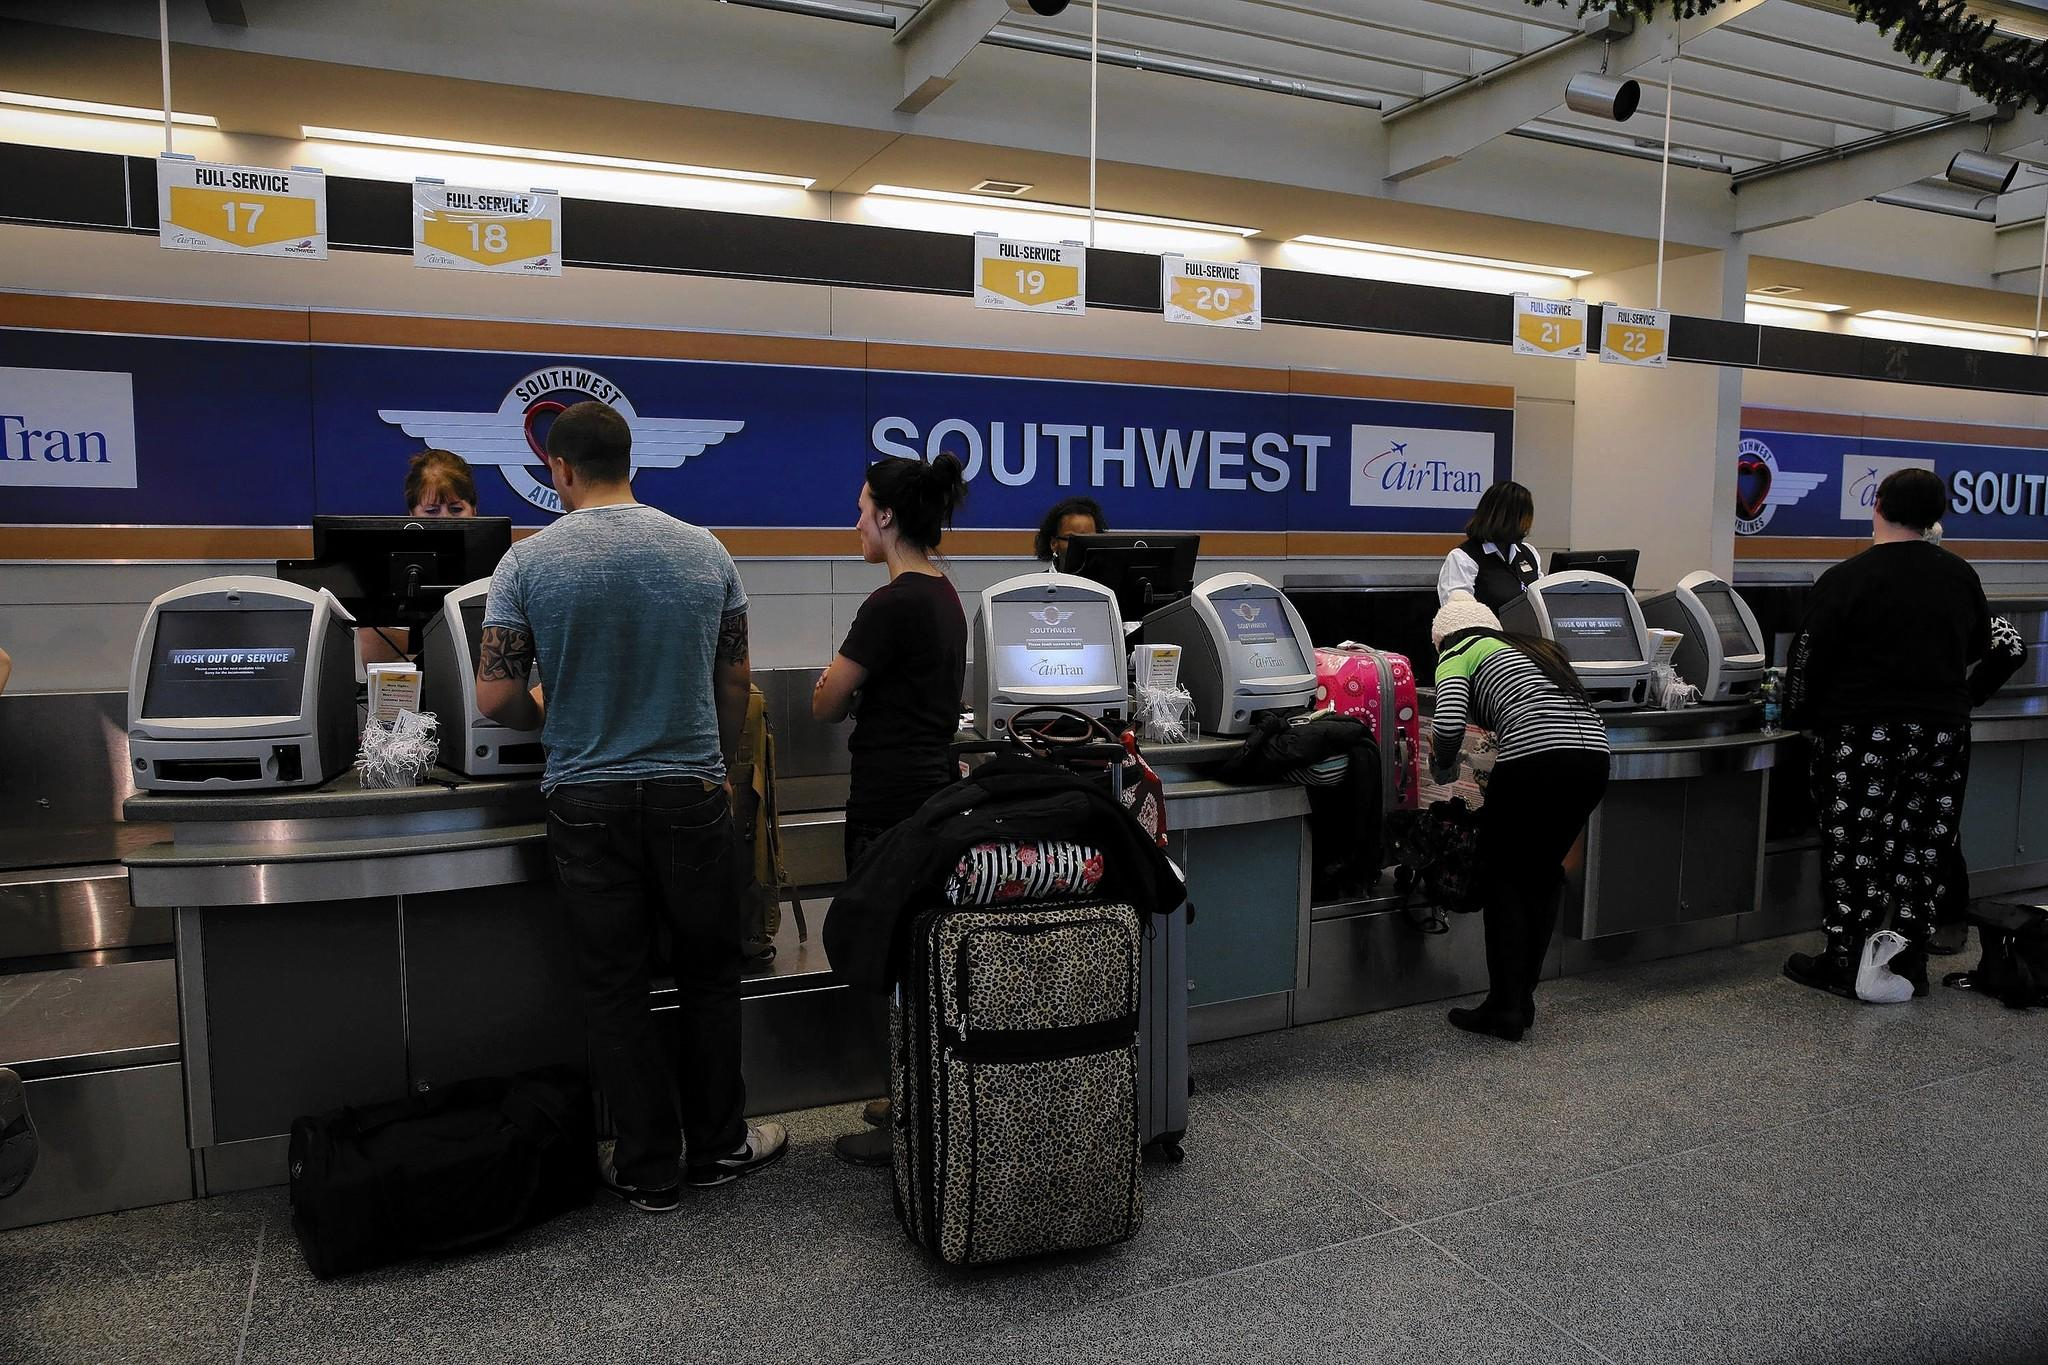 The primary reason for Southwest Airlines' on-time problems is its plan to reduce allowed times for flights and to crunch its gate turnaround times.